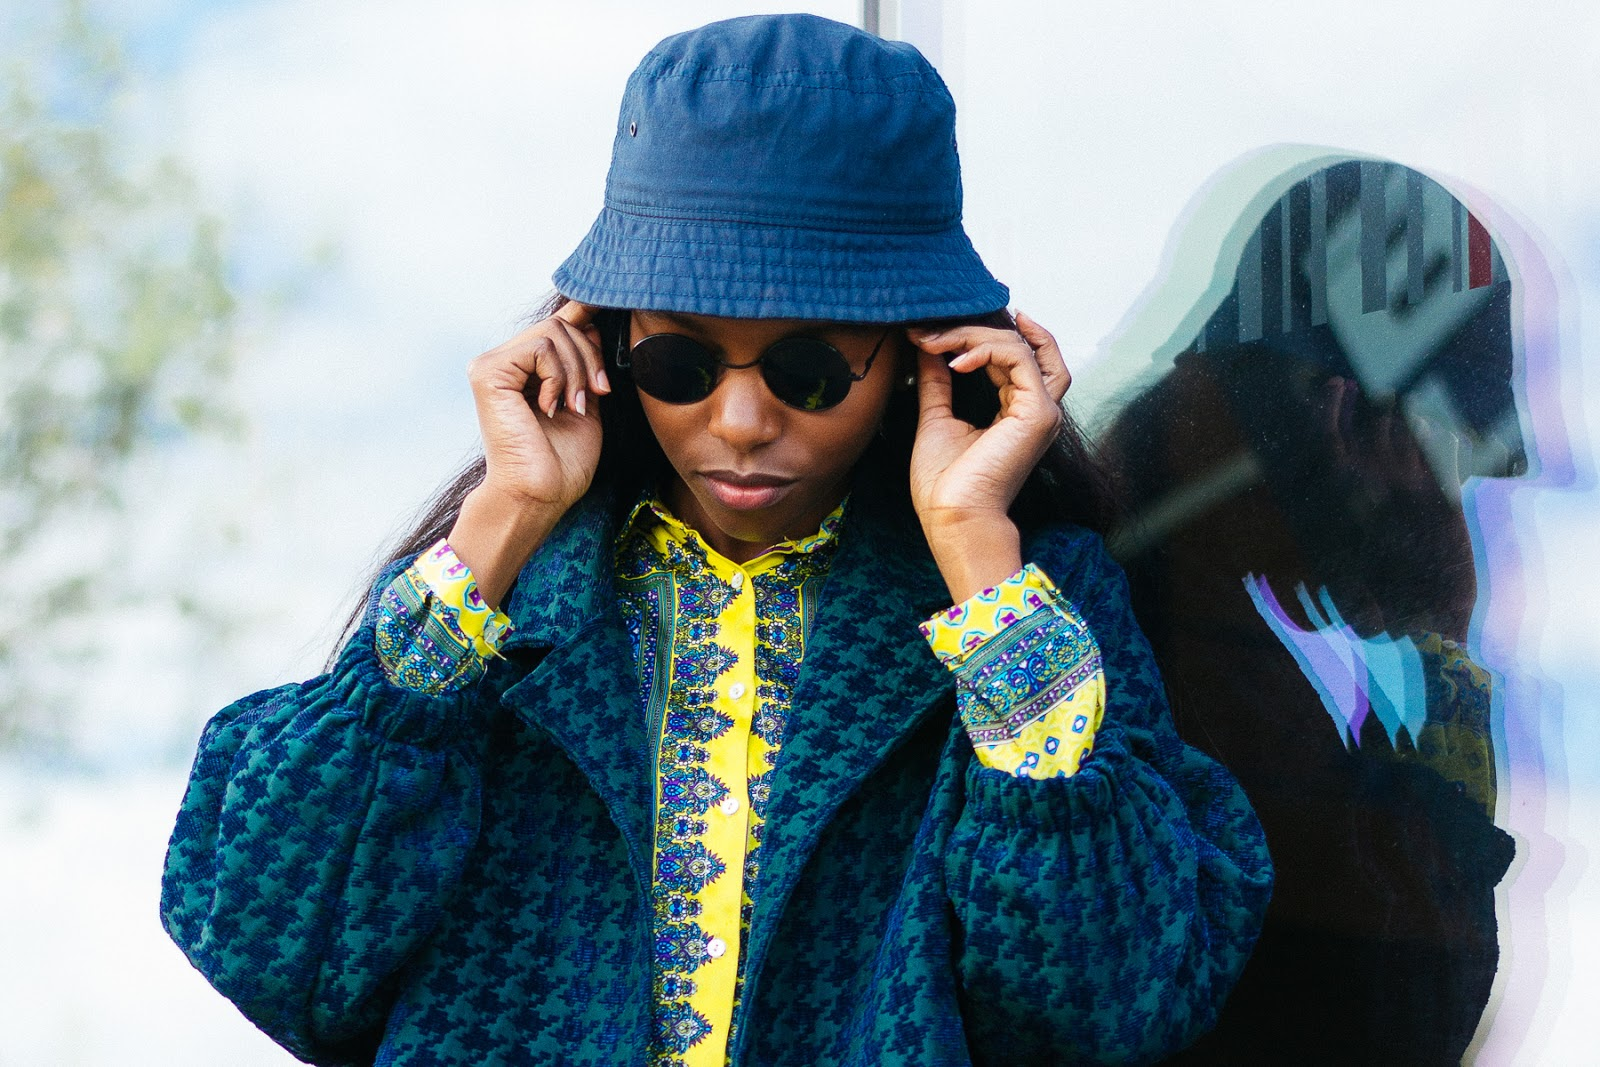 circle glasses, bucket hat, H&M, Zara, paisley print, dogtooth print, houndstooth print